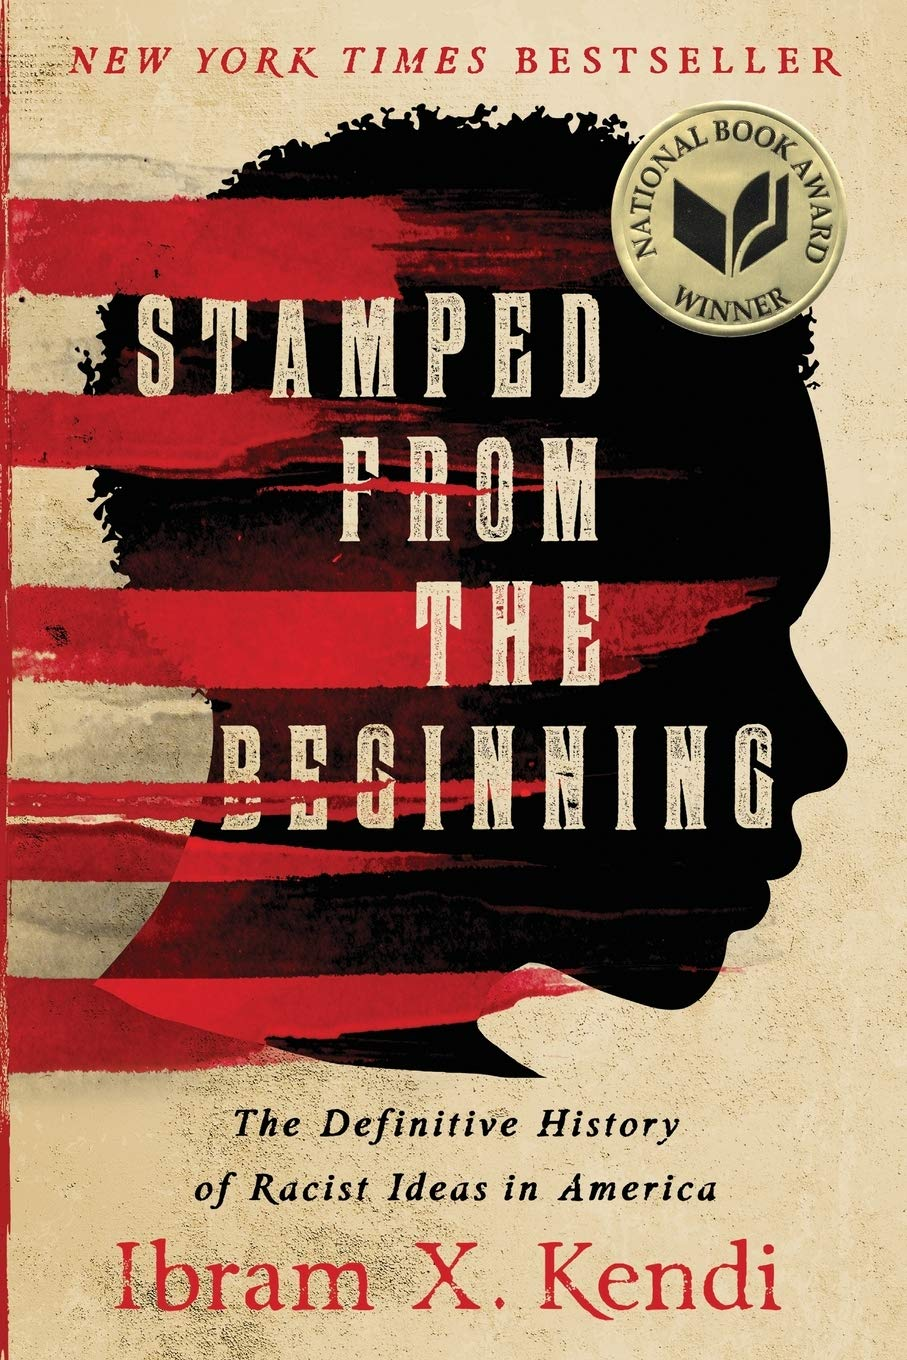 Cover of Stamped from the Beginning: The Definitive History of Racist Ideas in America by Ibram X. Kendi